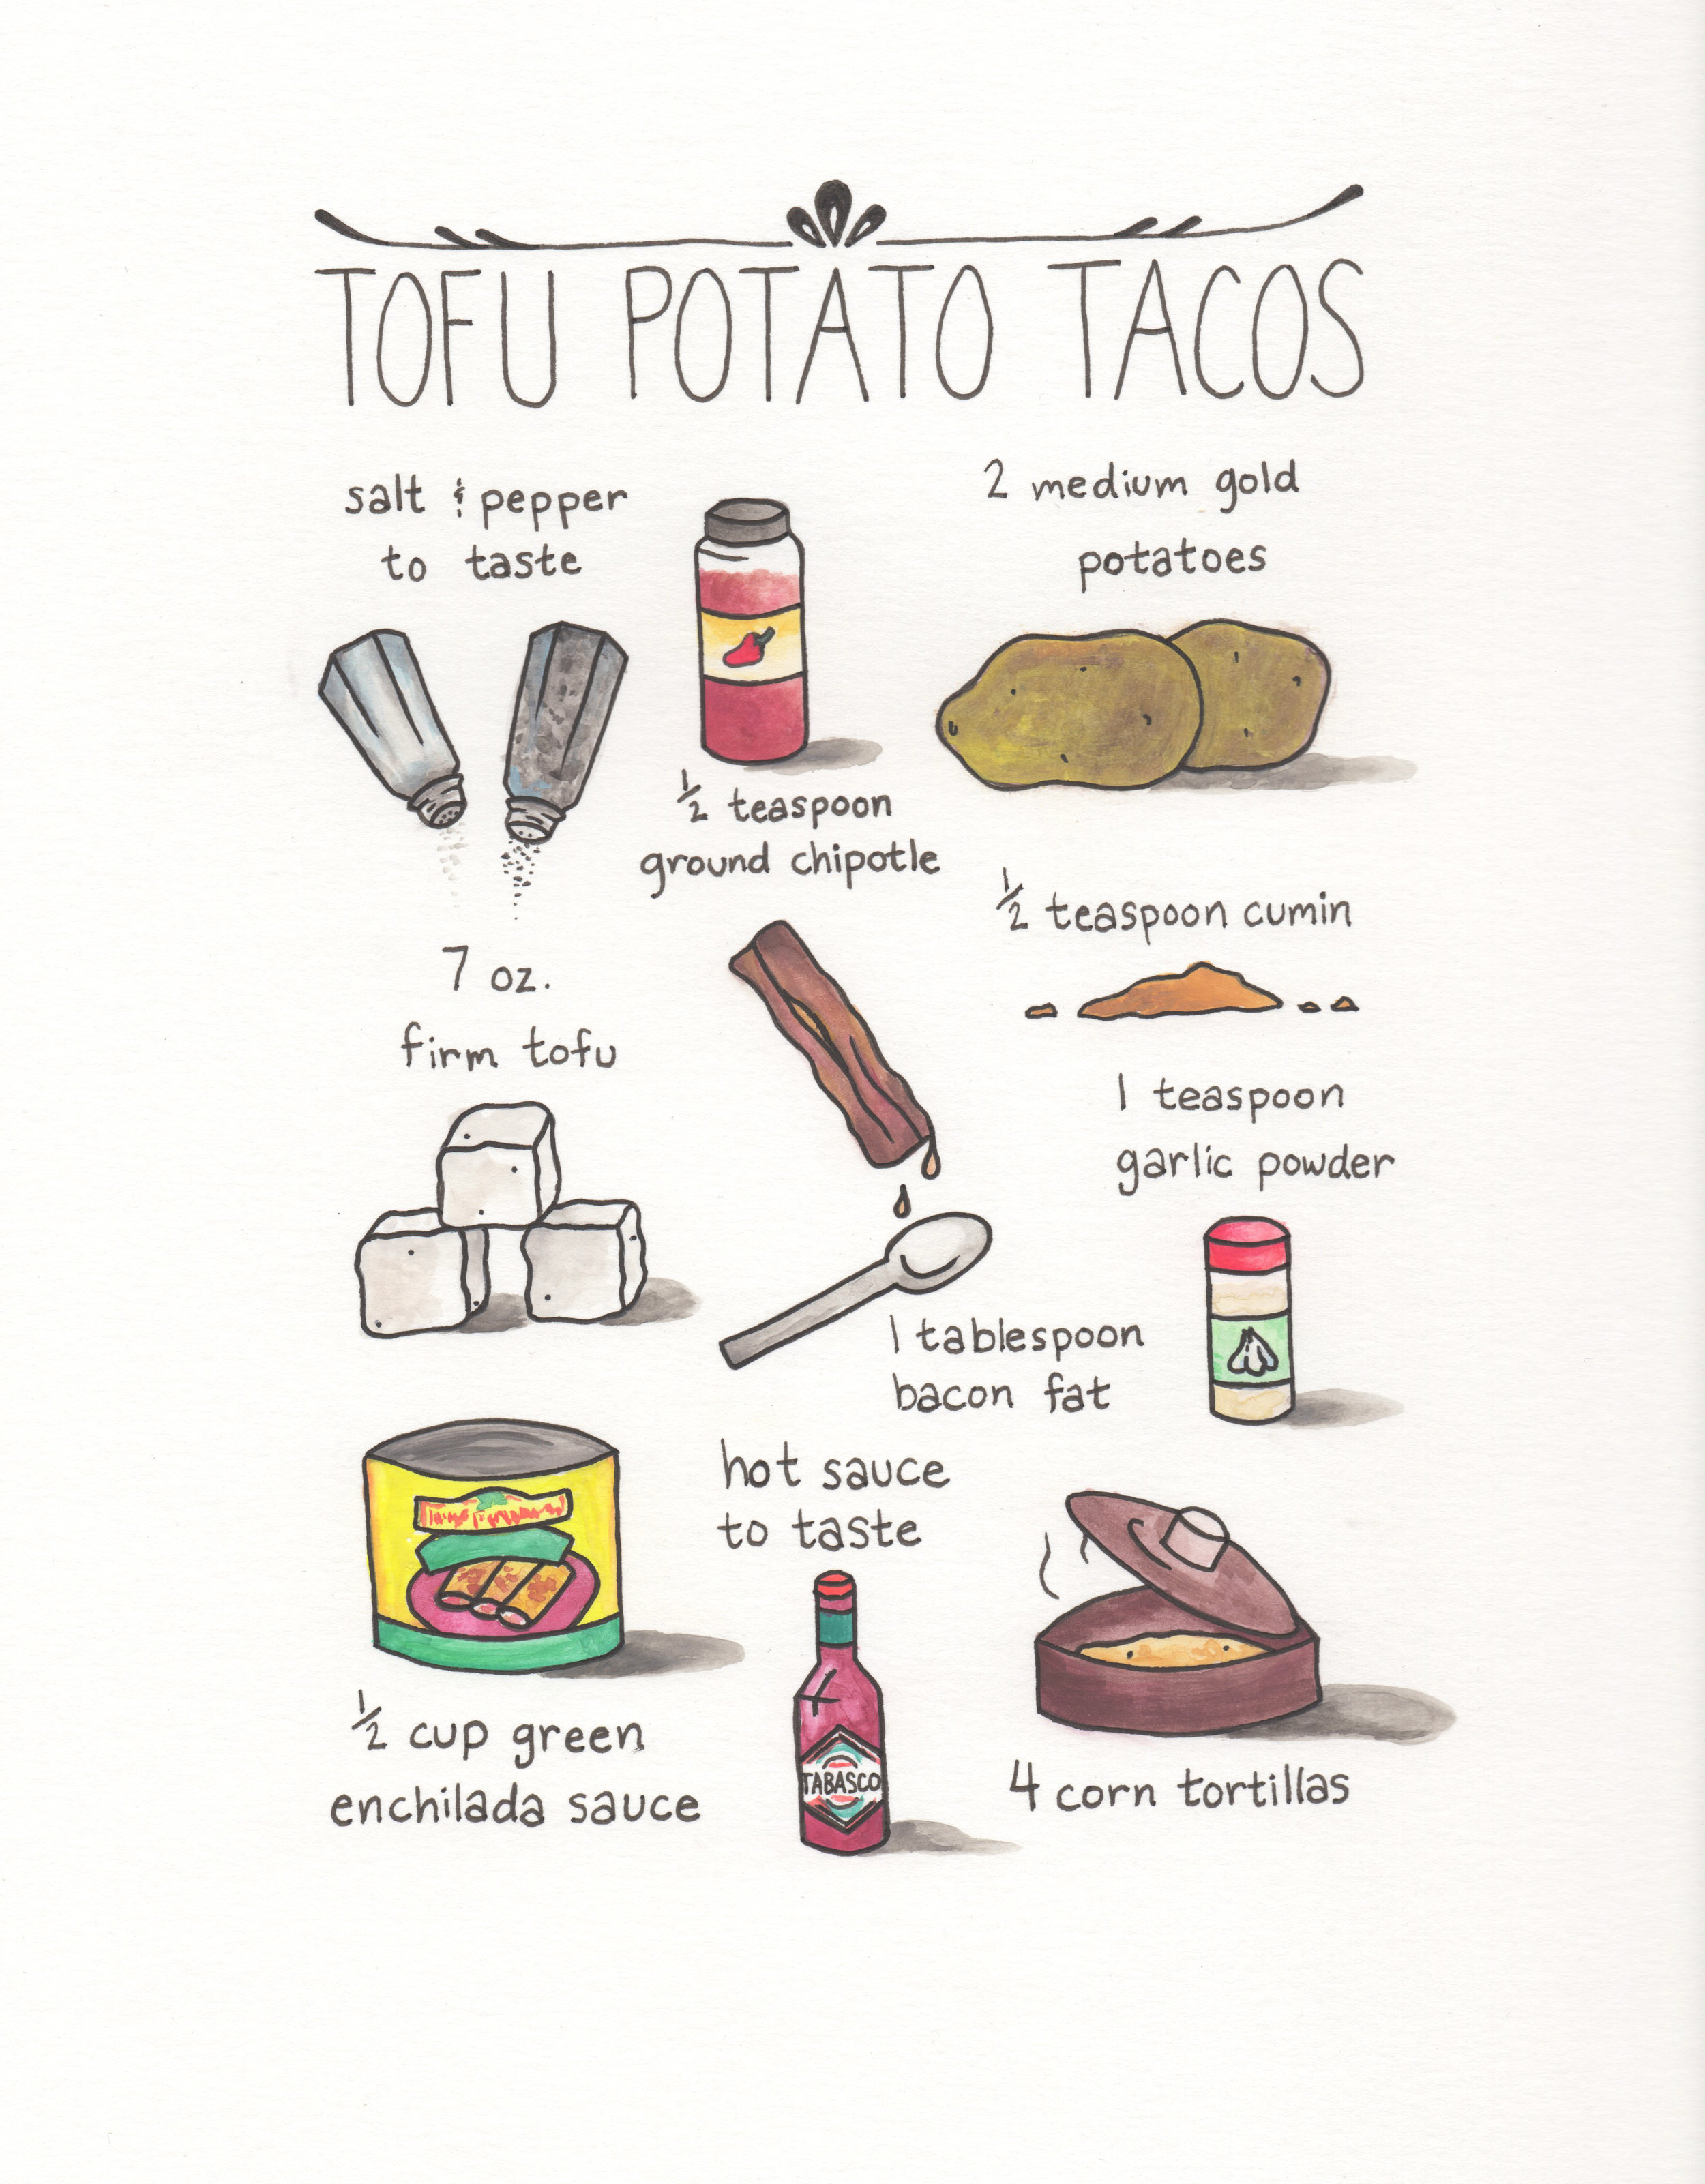 Tofu Potato Tacos